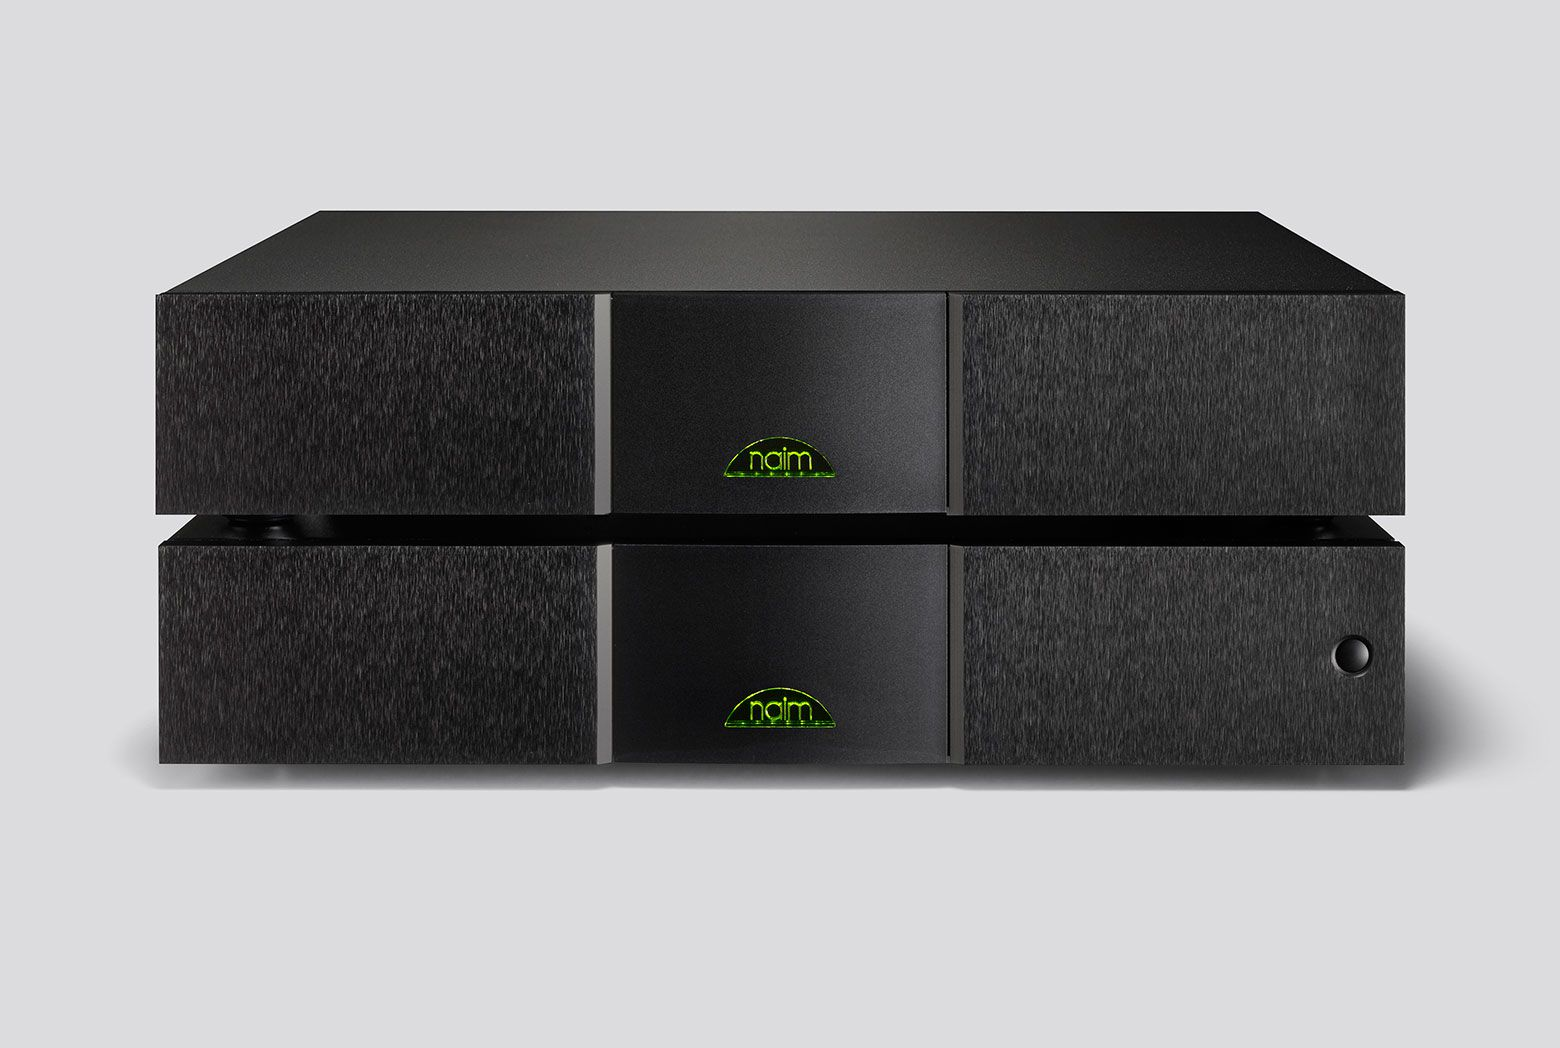 NAP 300 power amplifier